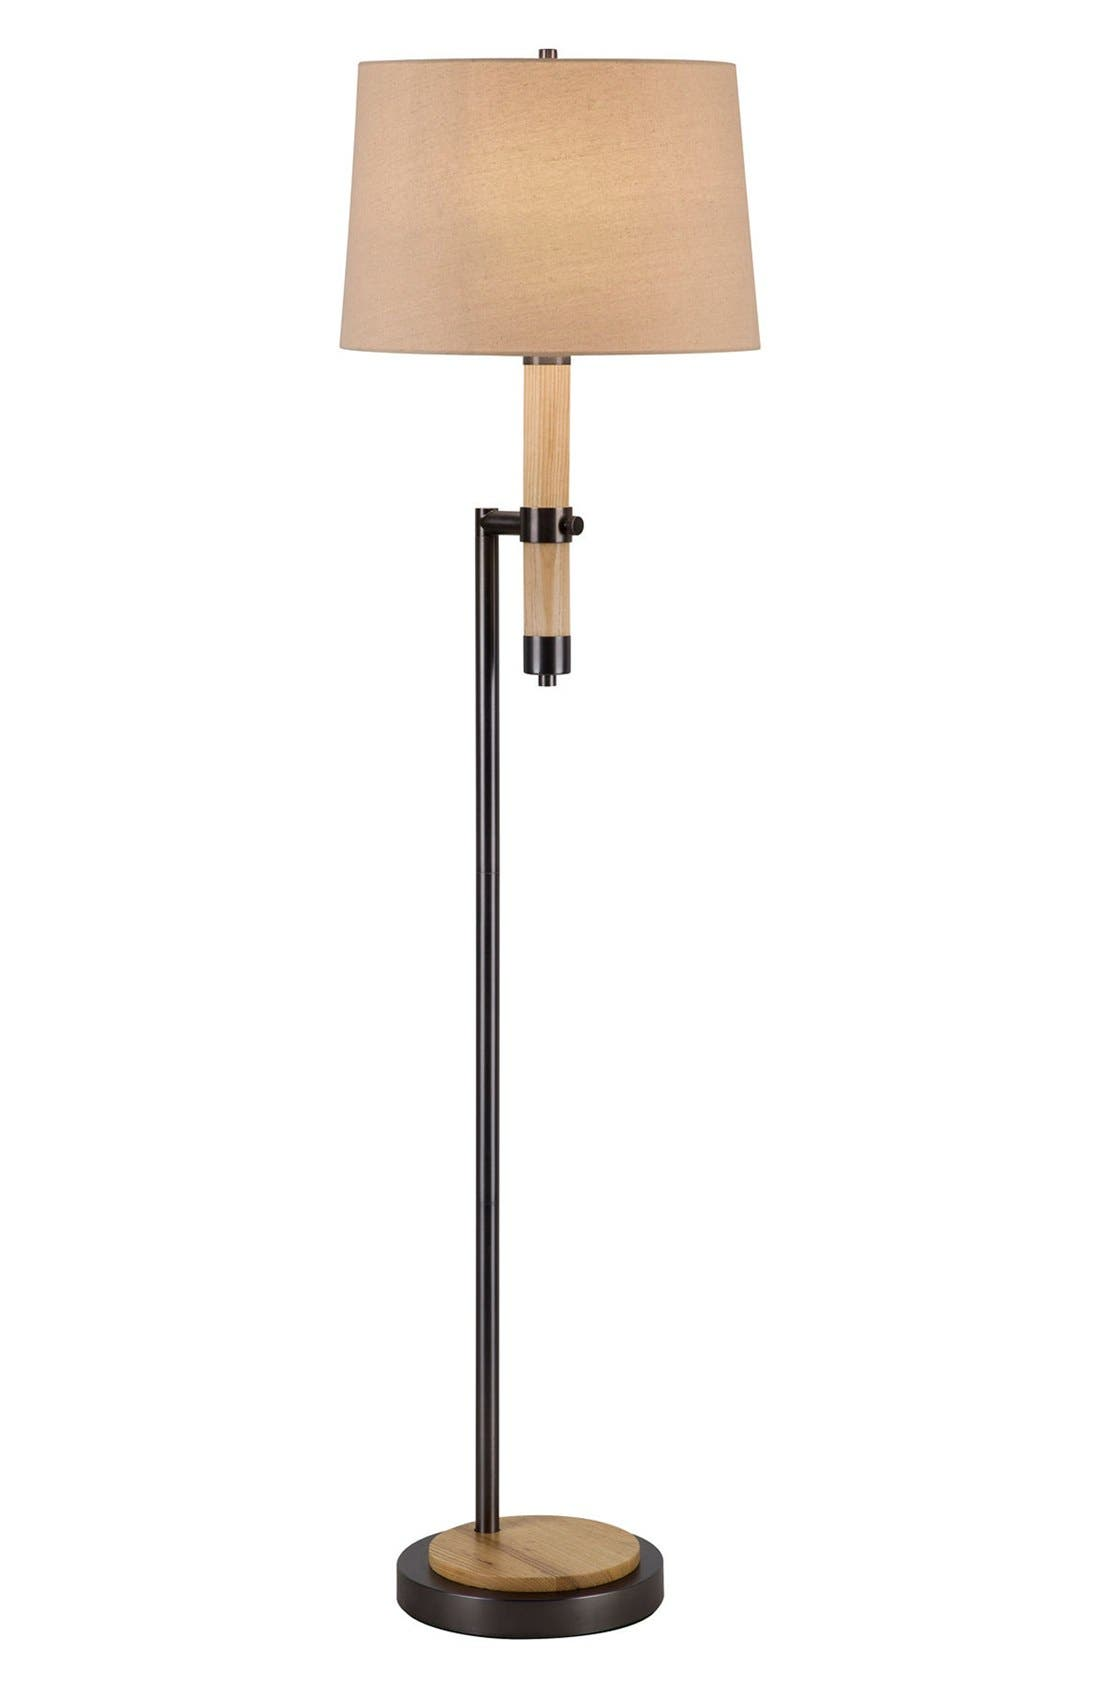 Main Image - JAlexander Wood & Metal Floor Lamp